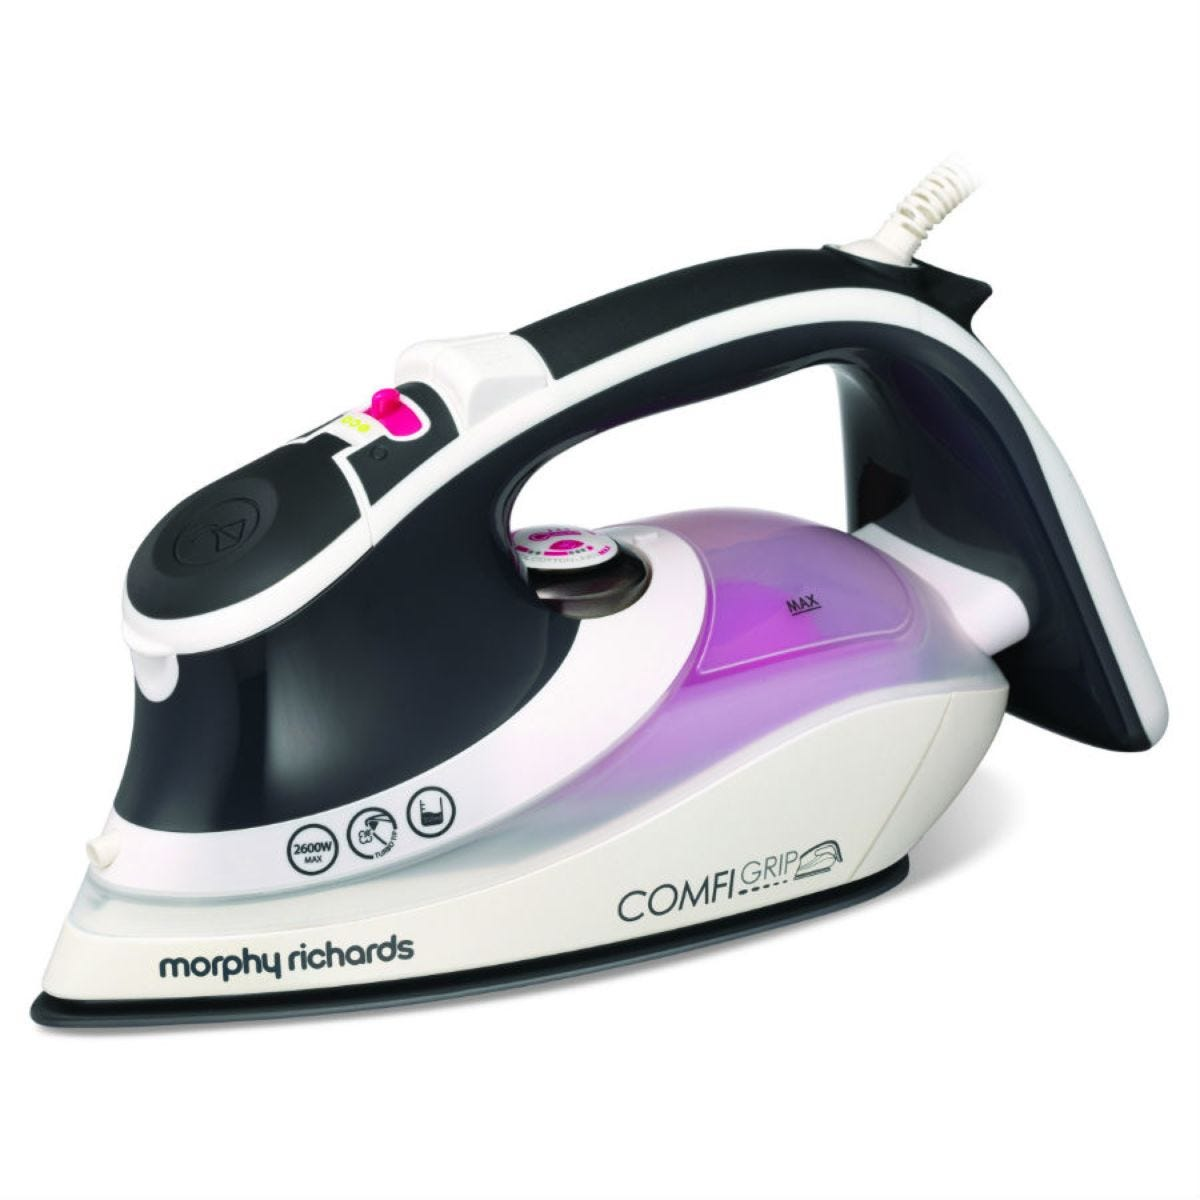 Morphy Richards Comfigrip 2600W Steam Iron - Charcoal/Pink